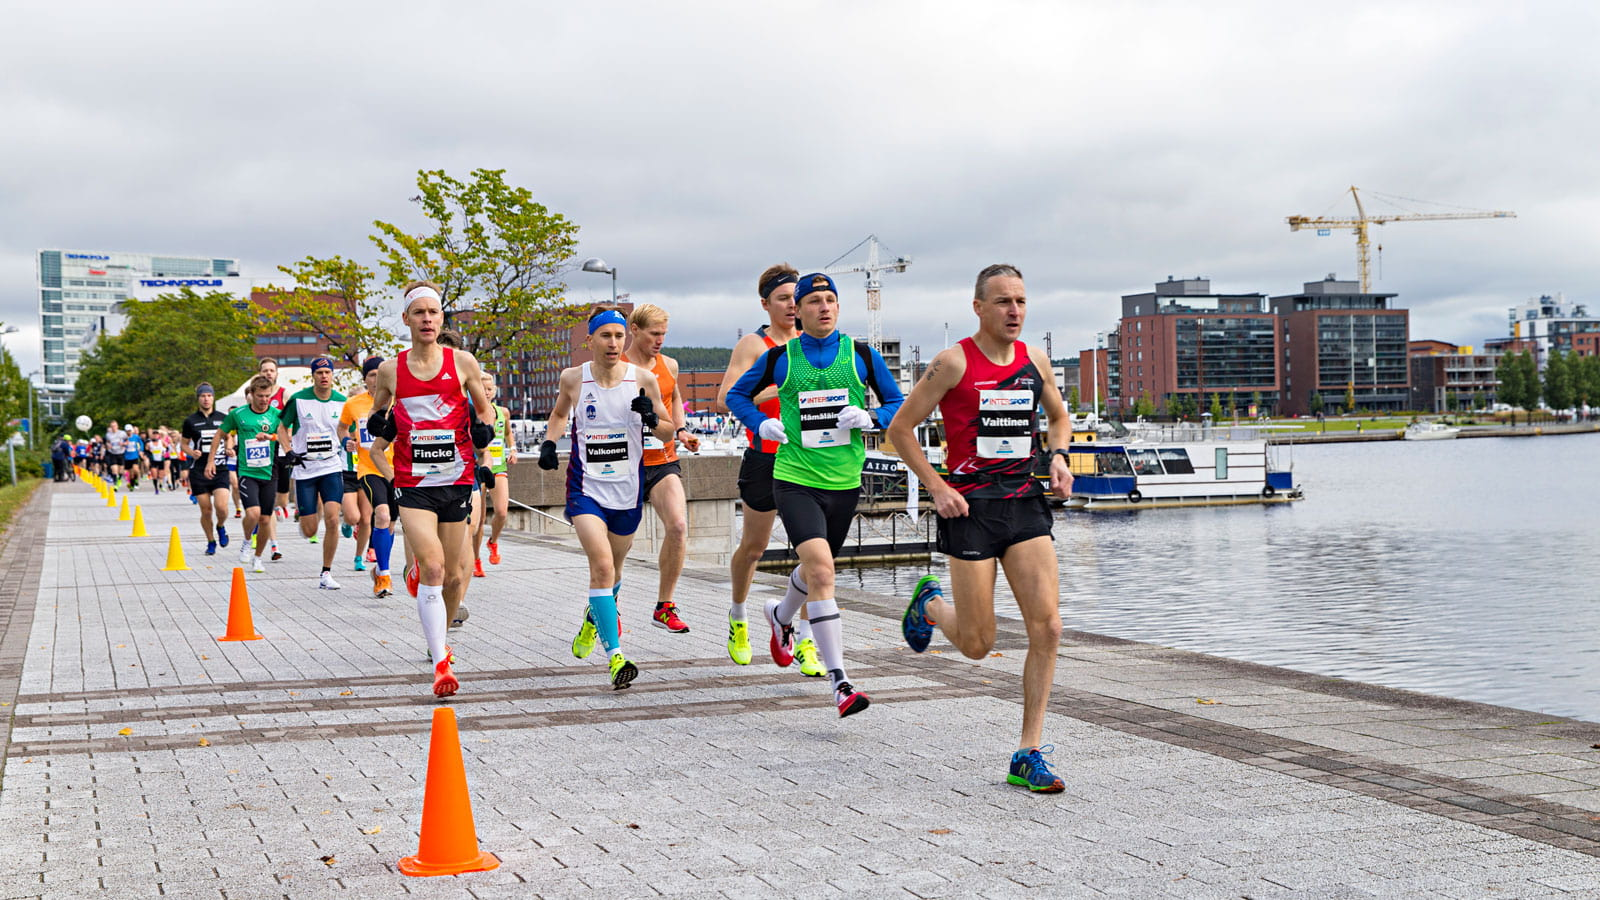 Persons running Finlandia Marathon in Jyväskylä harbour.